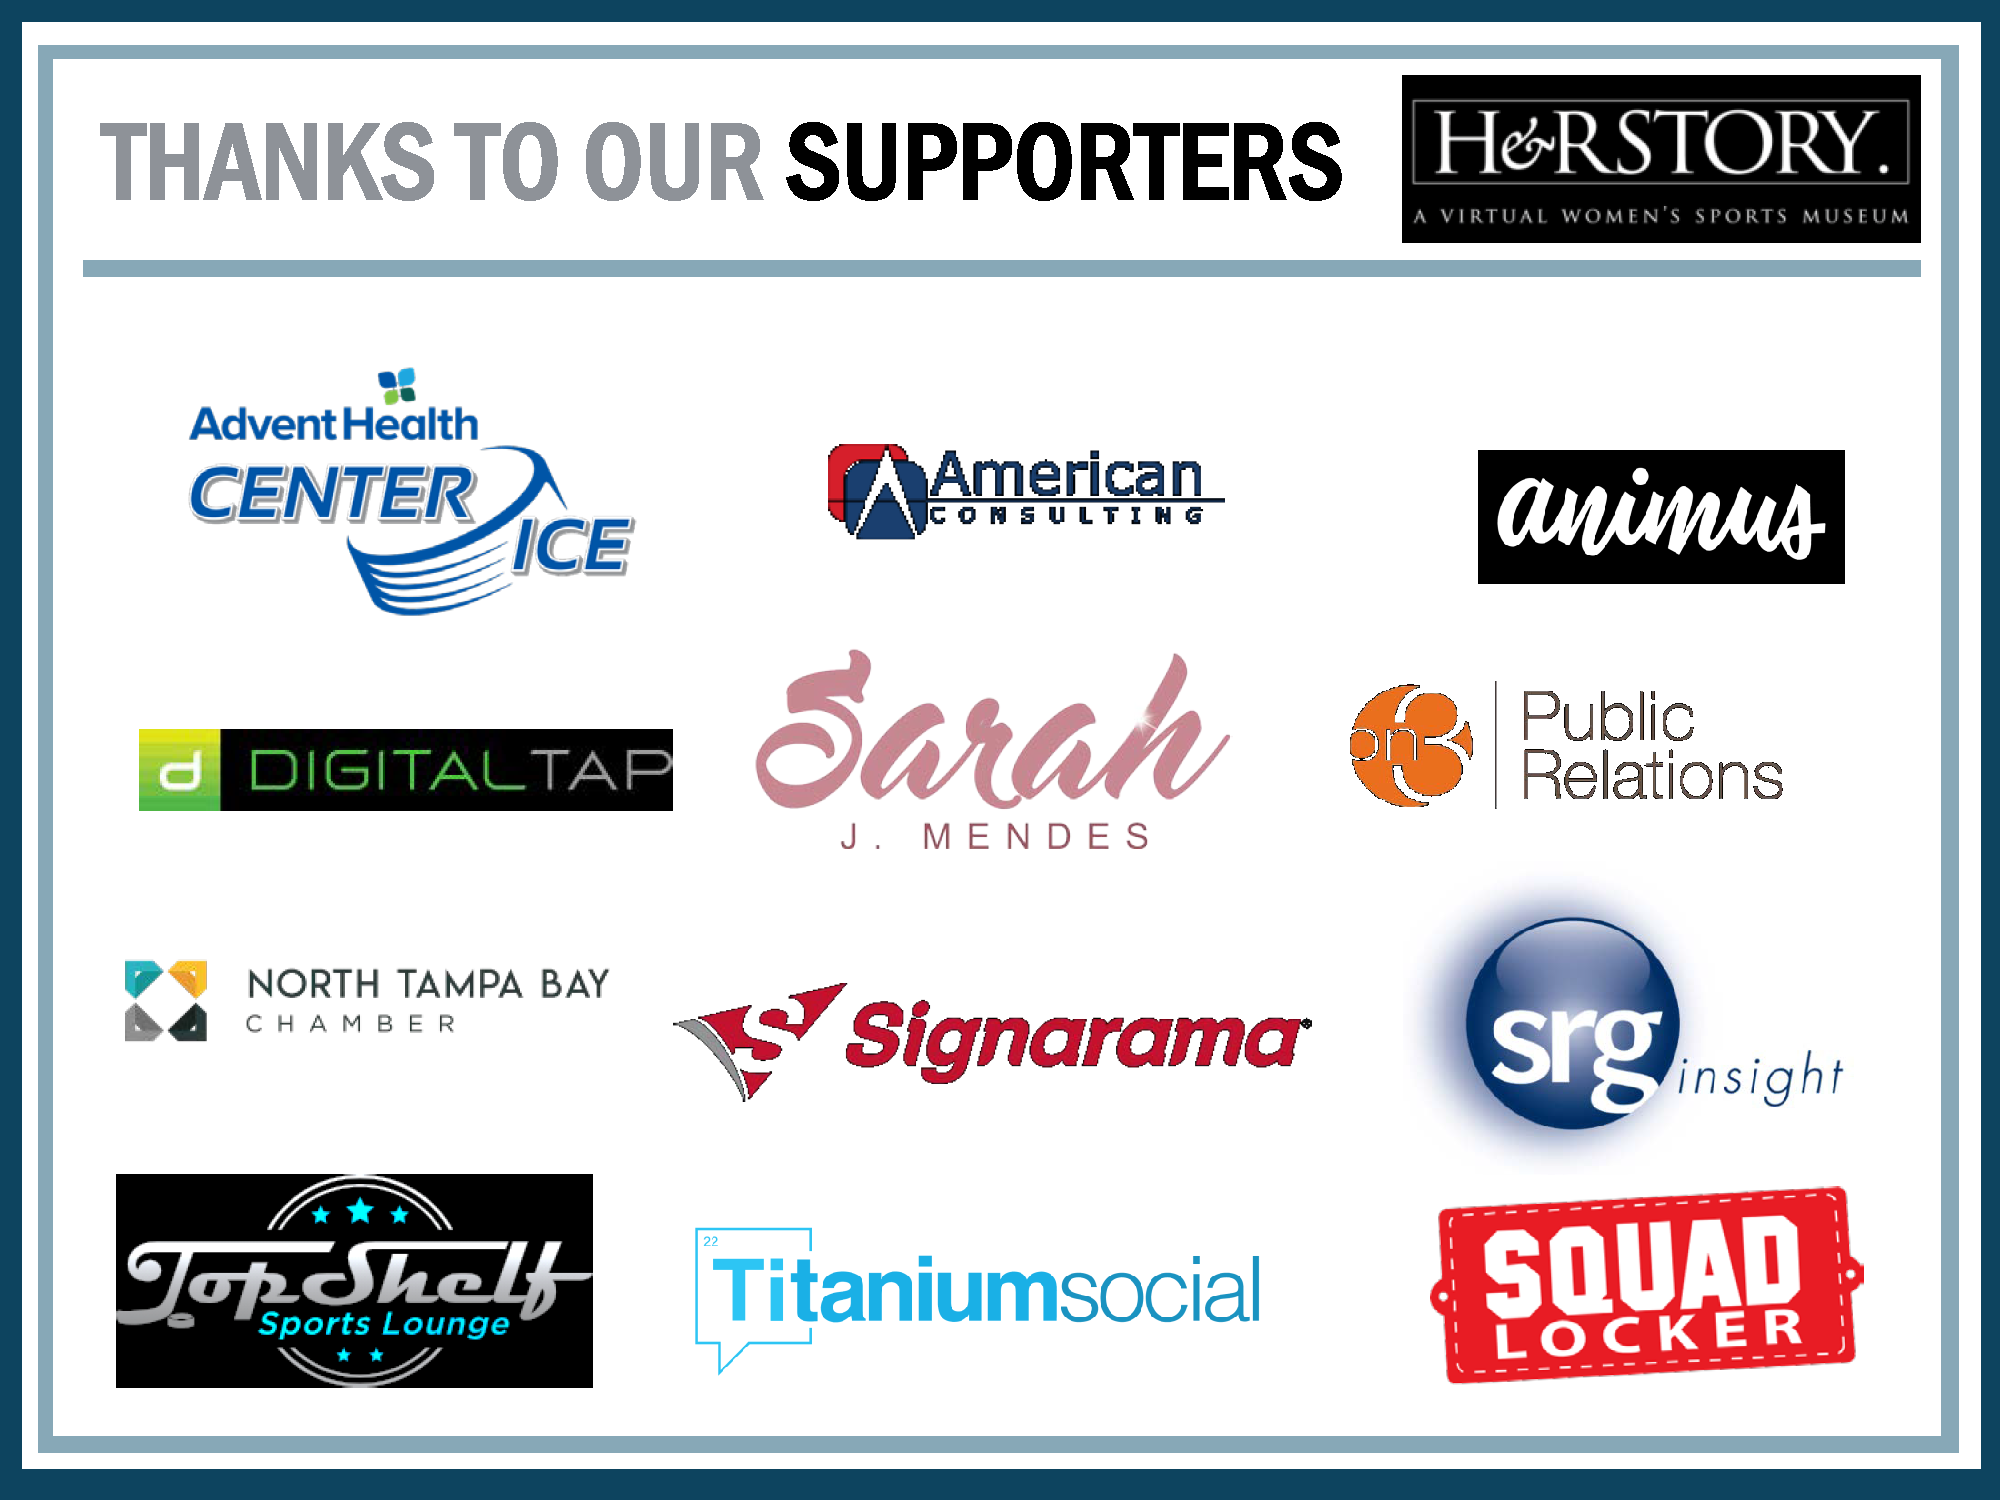 Thanks to many of our supporters!